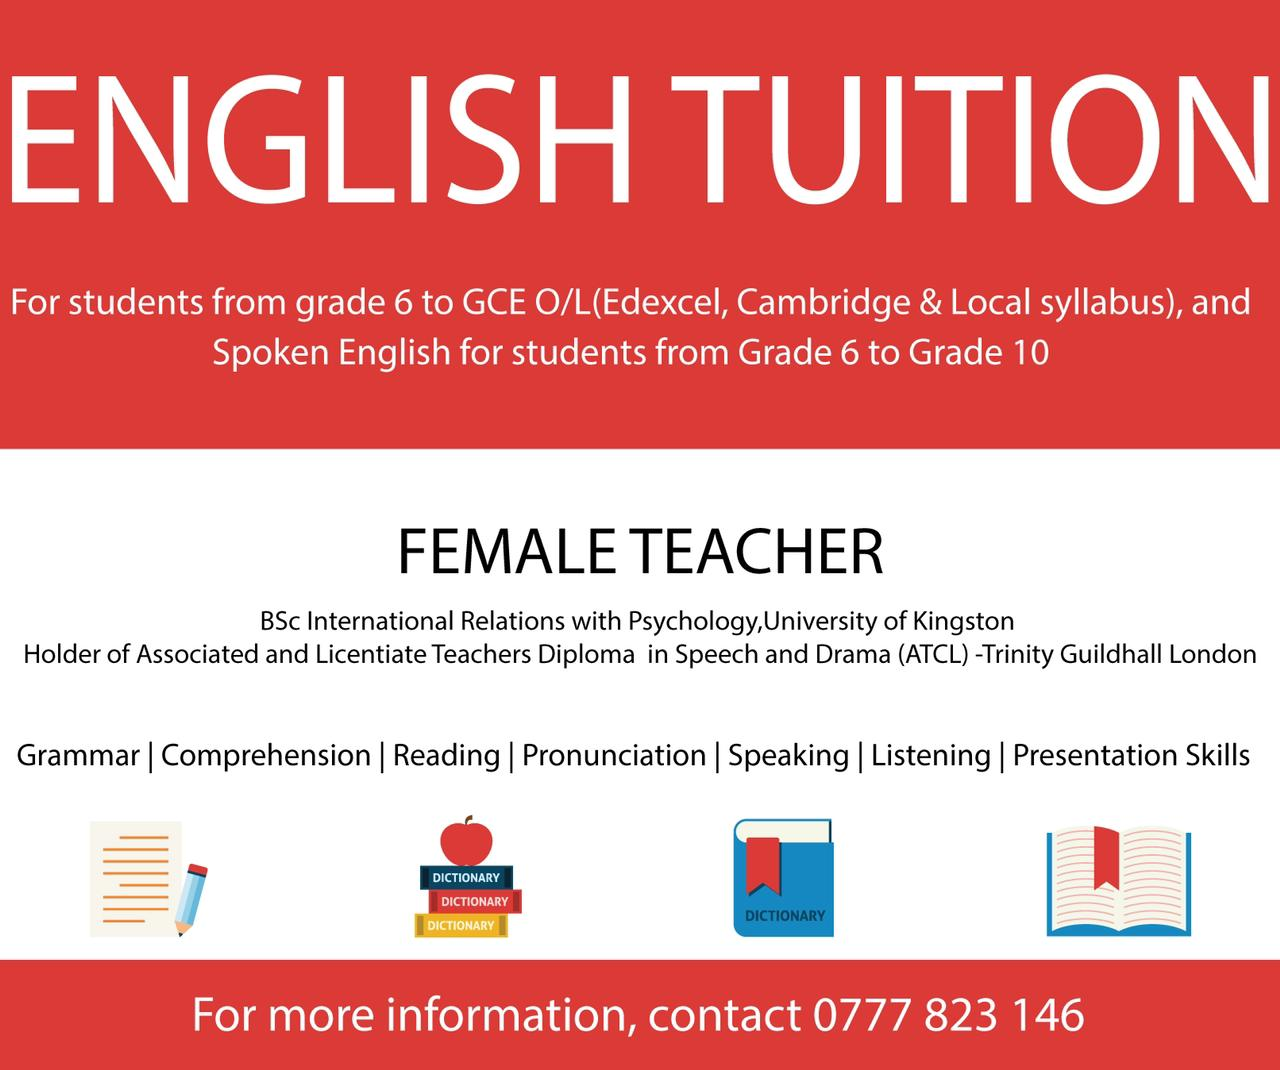 Classes conducted by a well experienced female teacher with over 7 Years of teaching experience, along with corporate work experience in hospitality